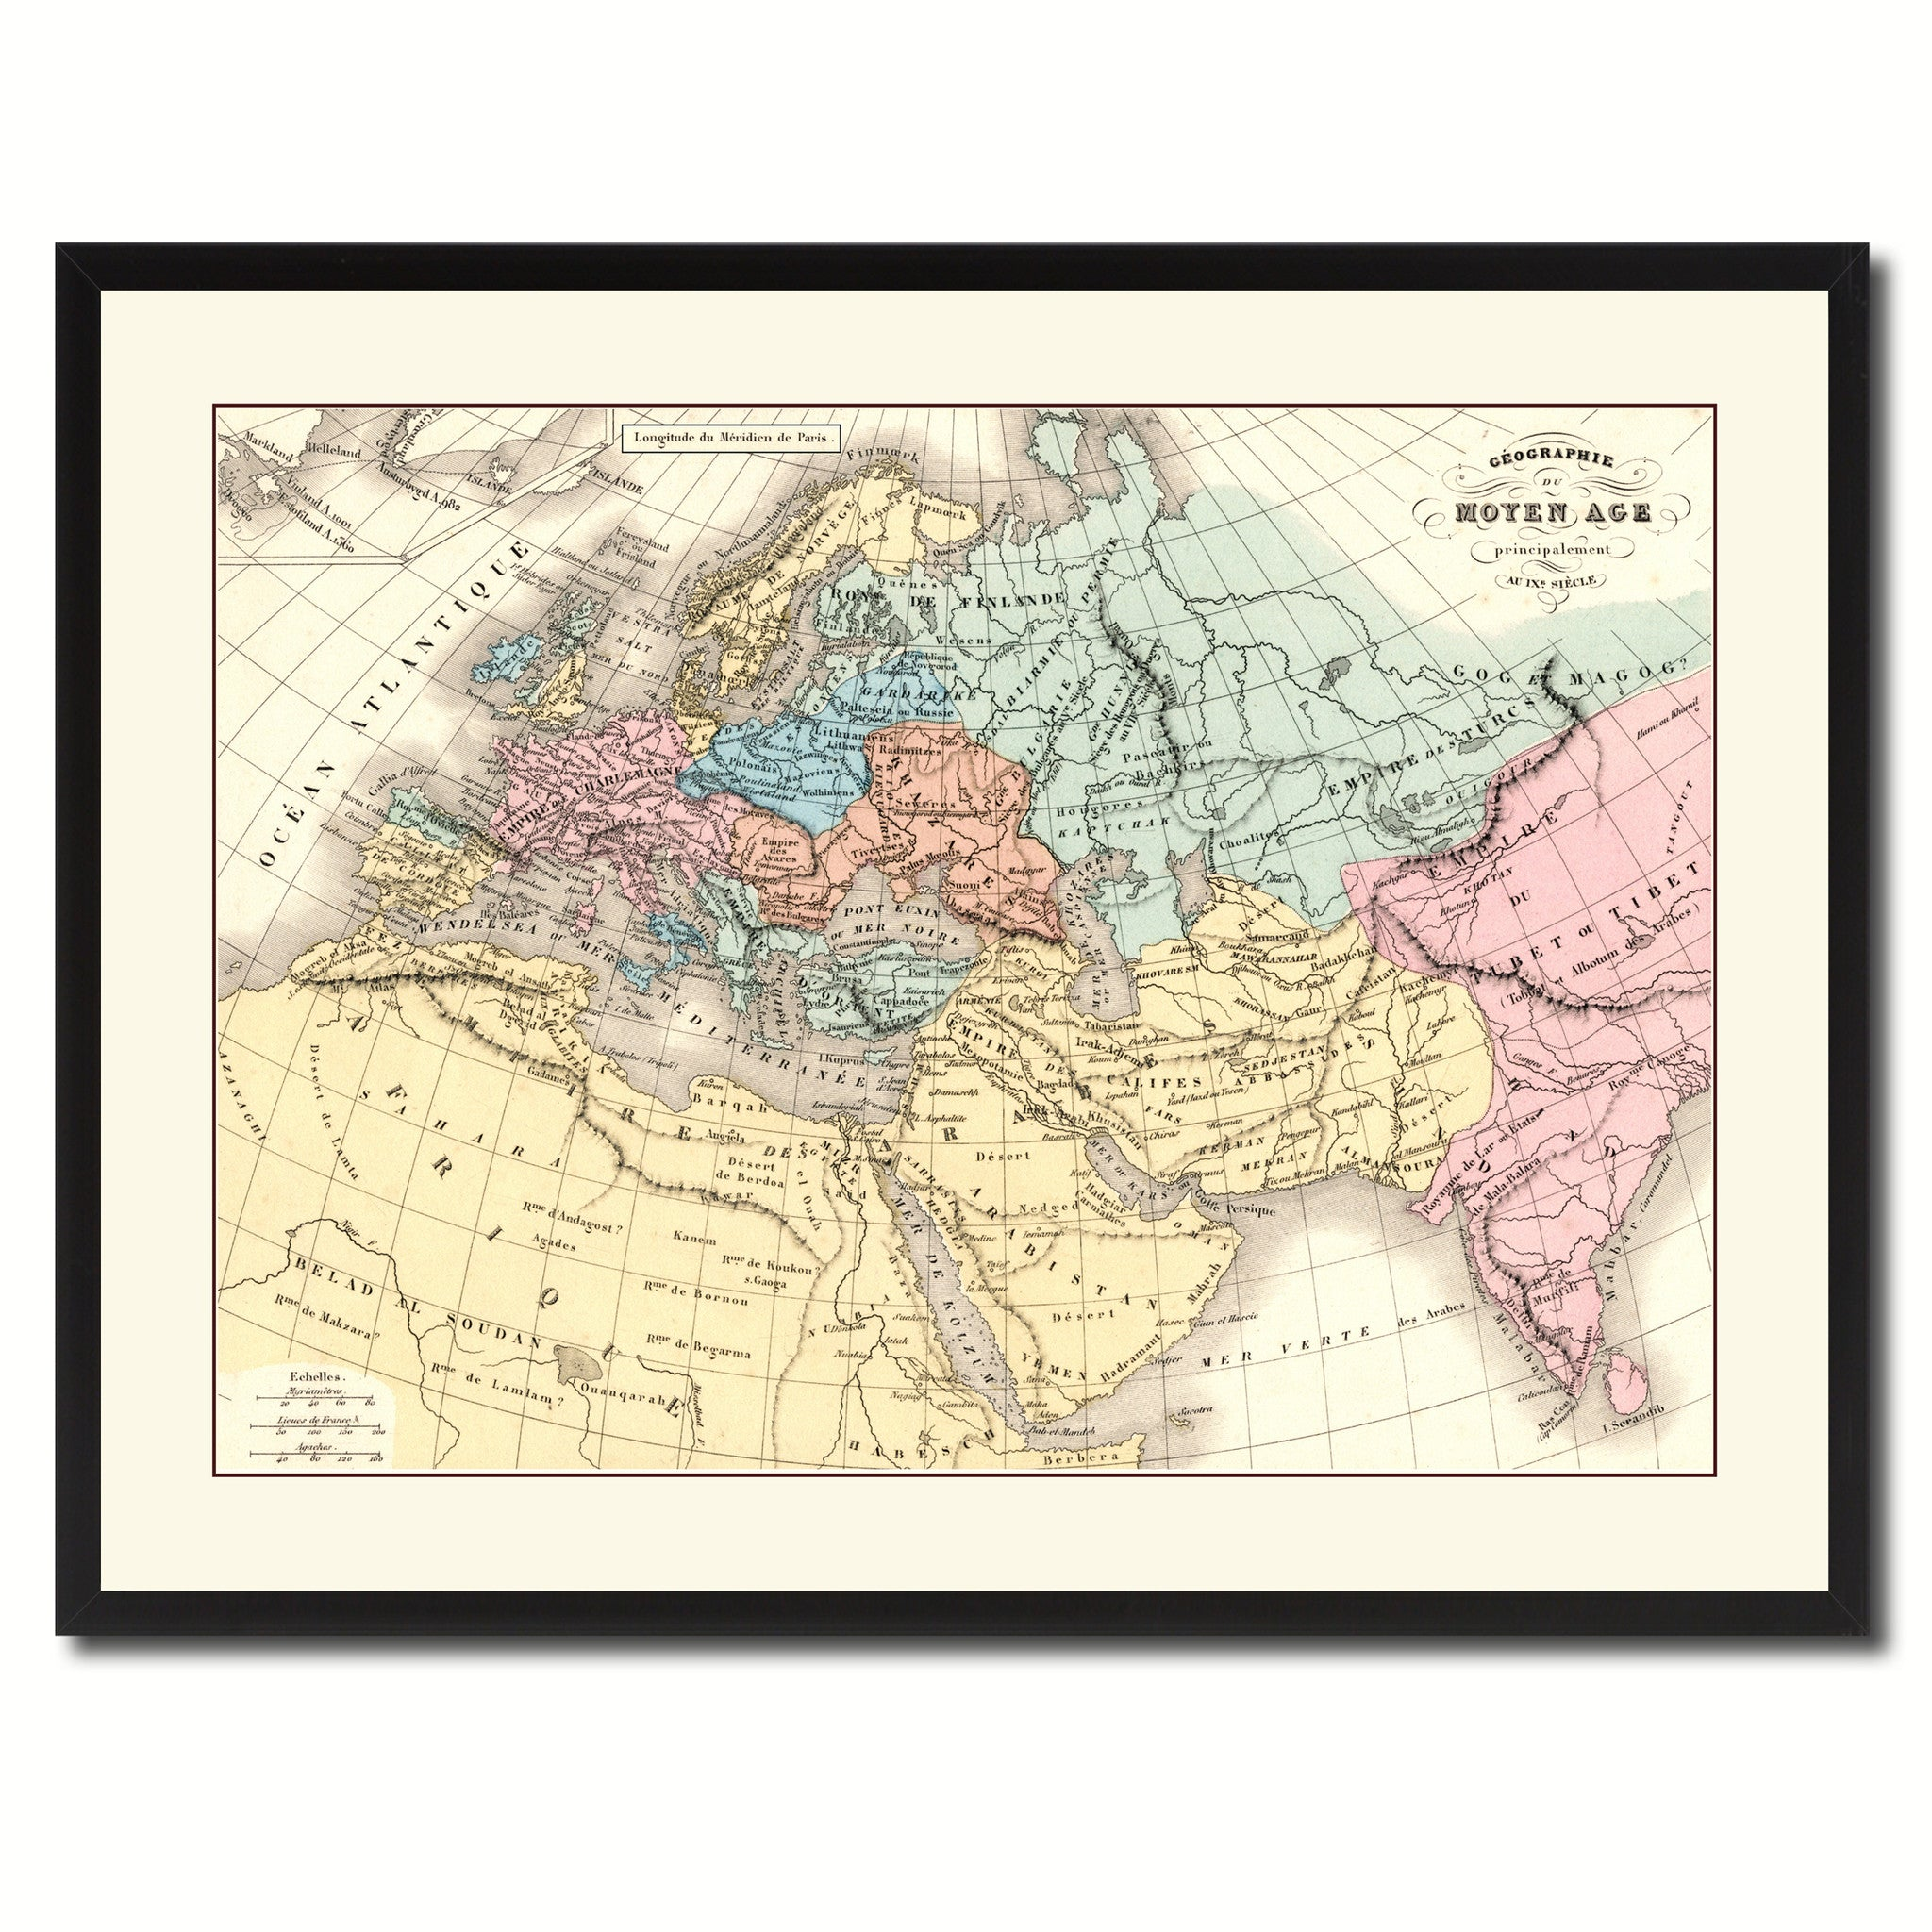 Europe In The Middle Ages Crusades Vintage Antique Map Wall Art Home Decor Gift Ideas Canvas Print Custom Picture Frame